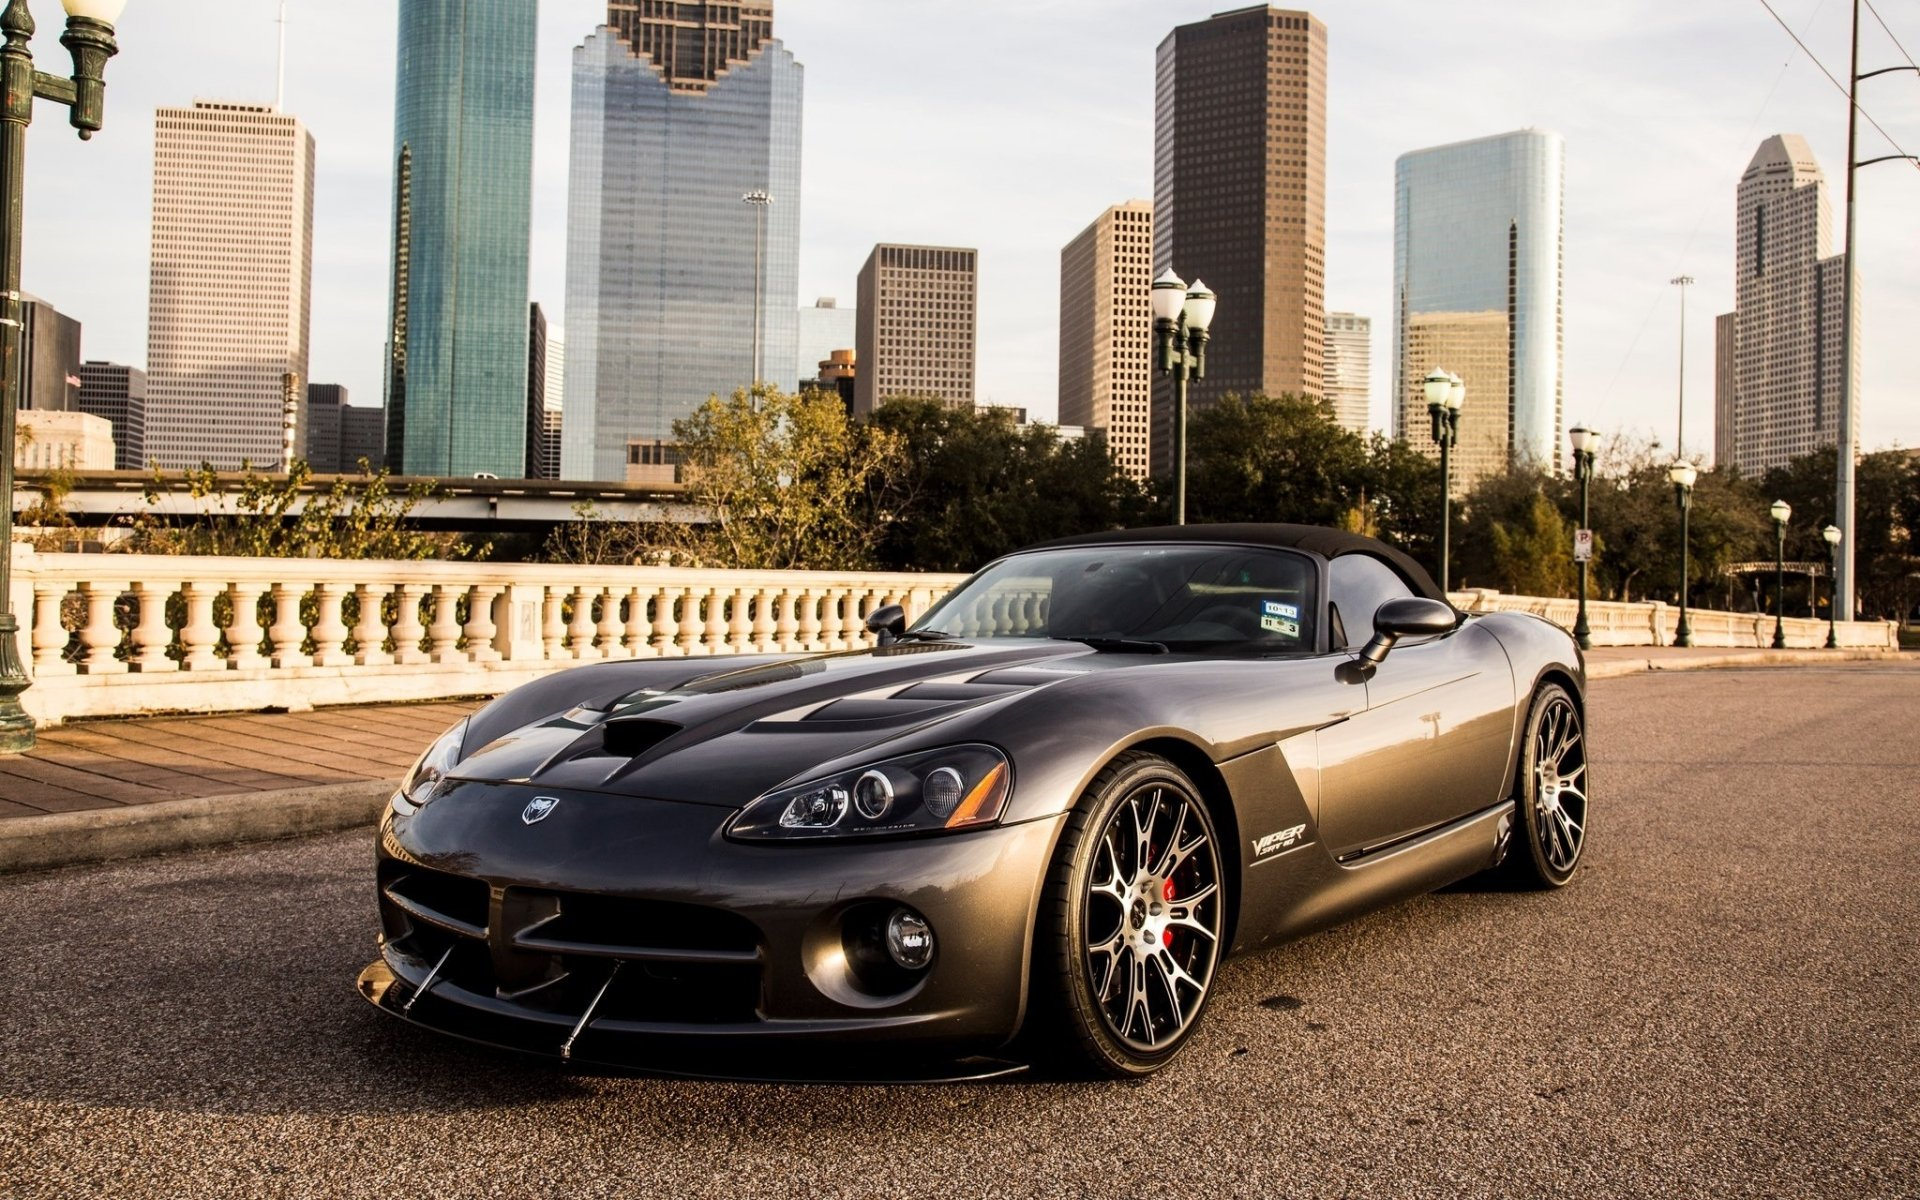 85 Dodge Viper Hd Wallpapers Background Images Wallpaper Abyss